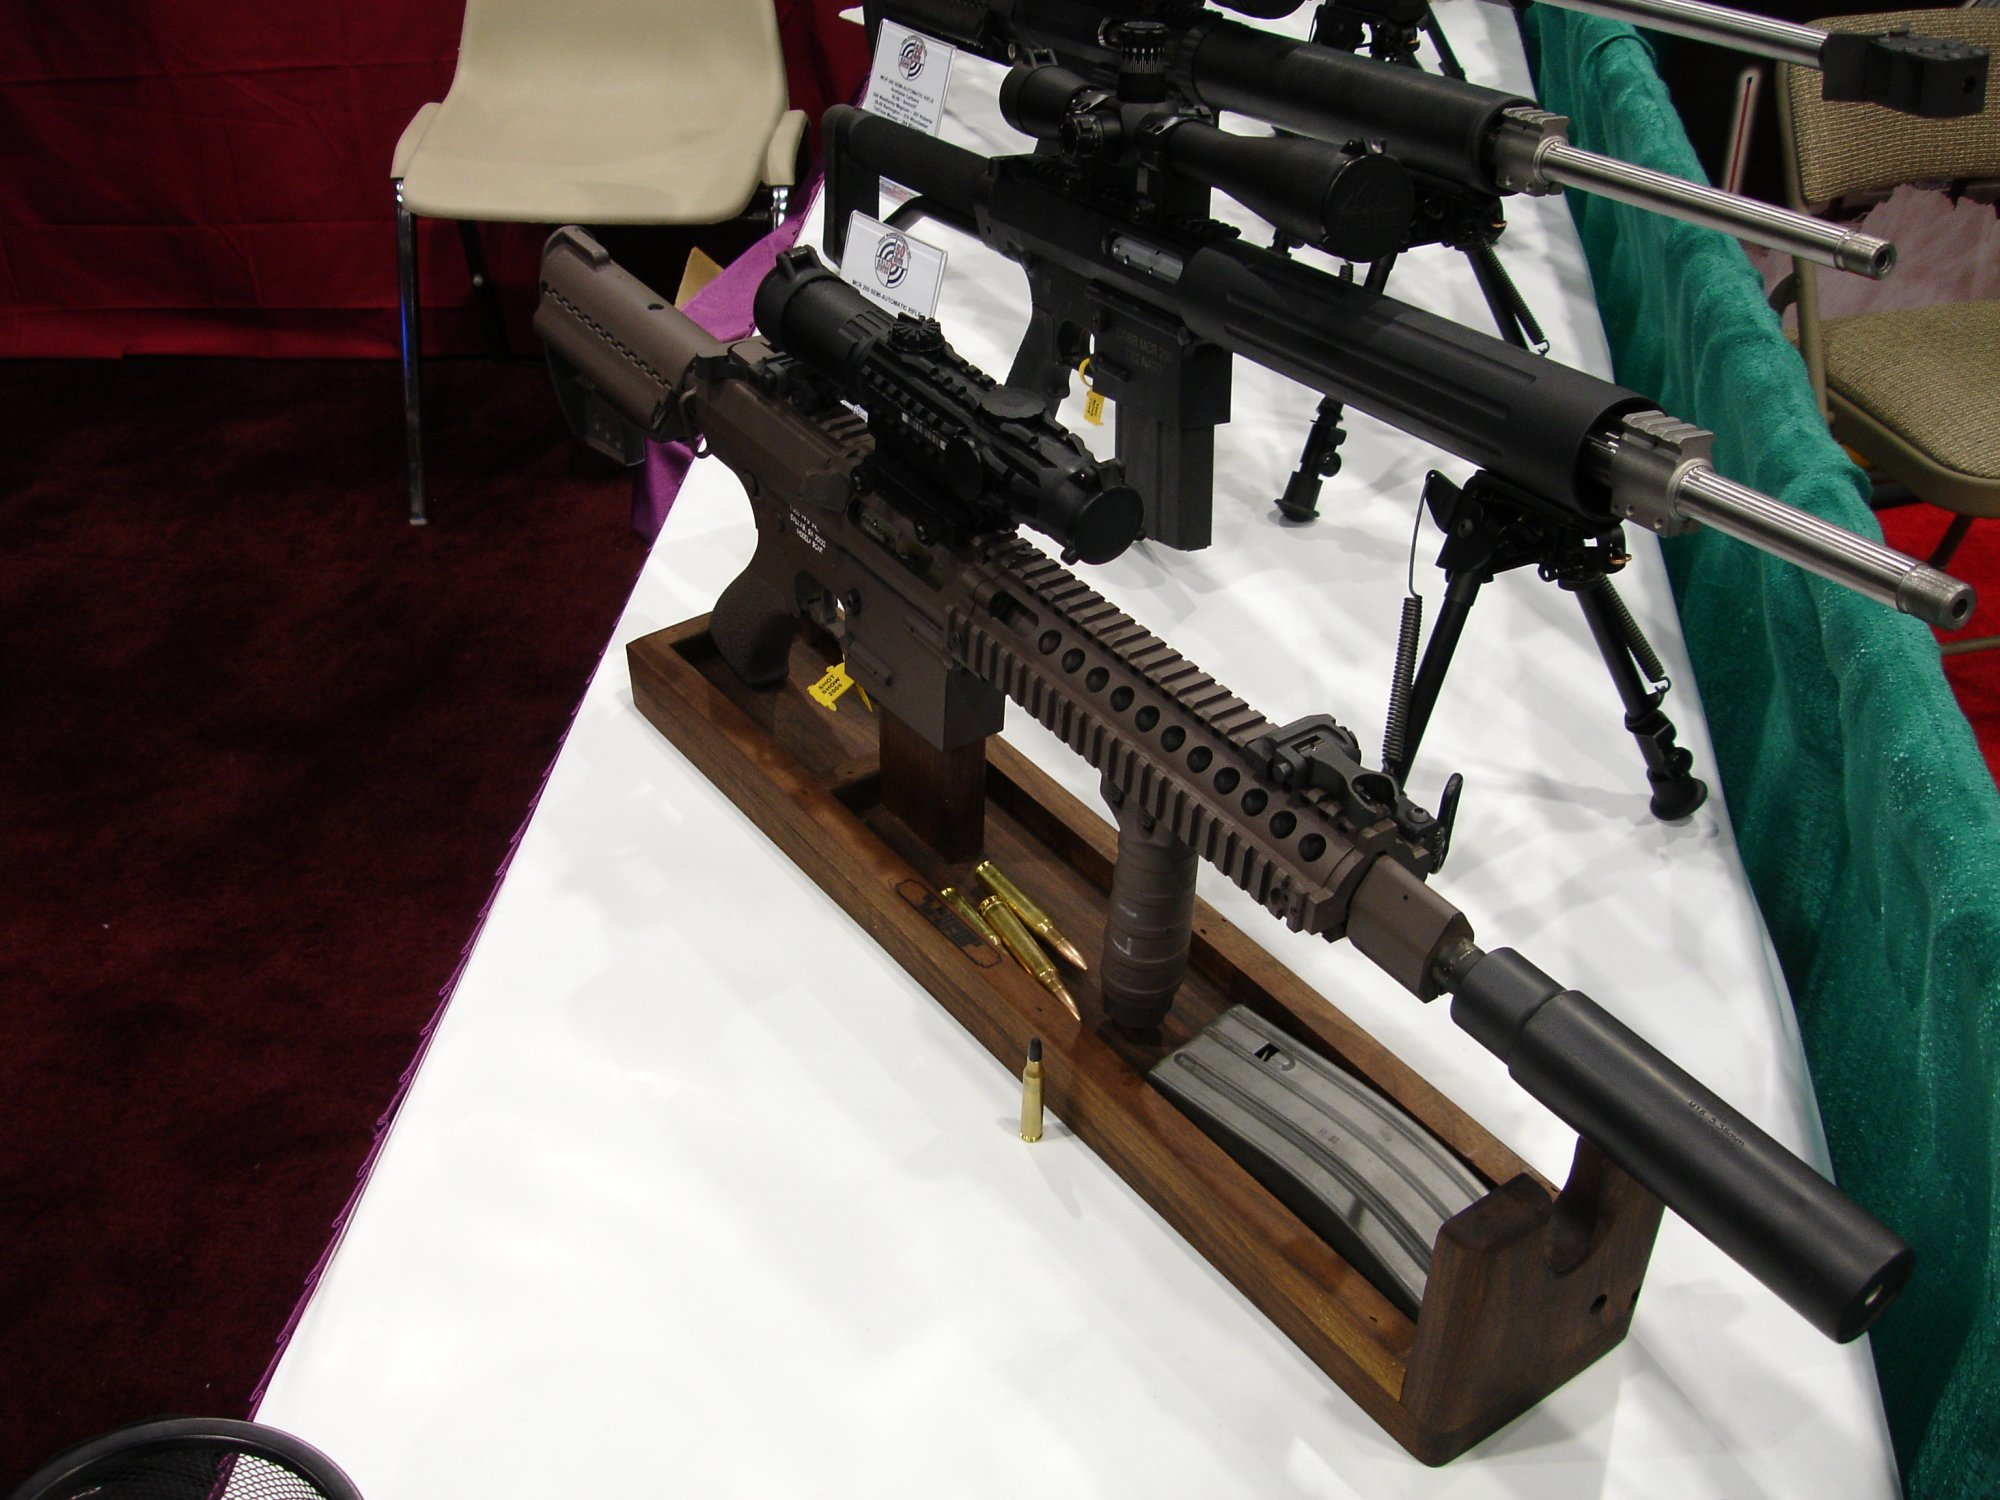 CobbMCR SCARprototype.308 5 <!  :en  >Cobb SCAR Candidate/MCR Prototype Weapons at SHOT Show 2005<!  :  >